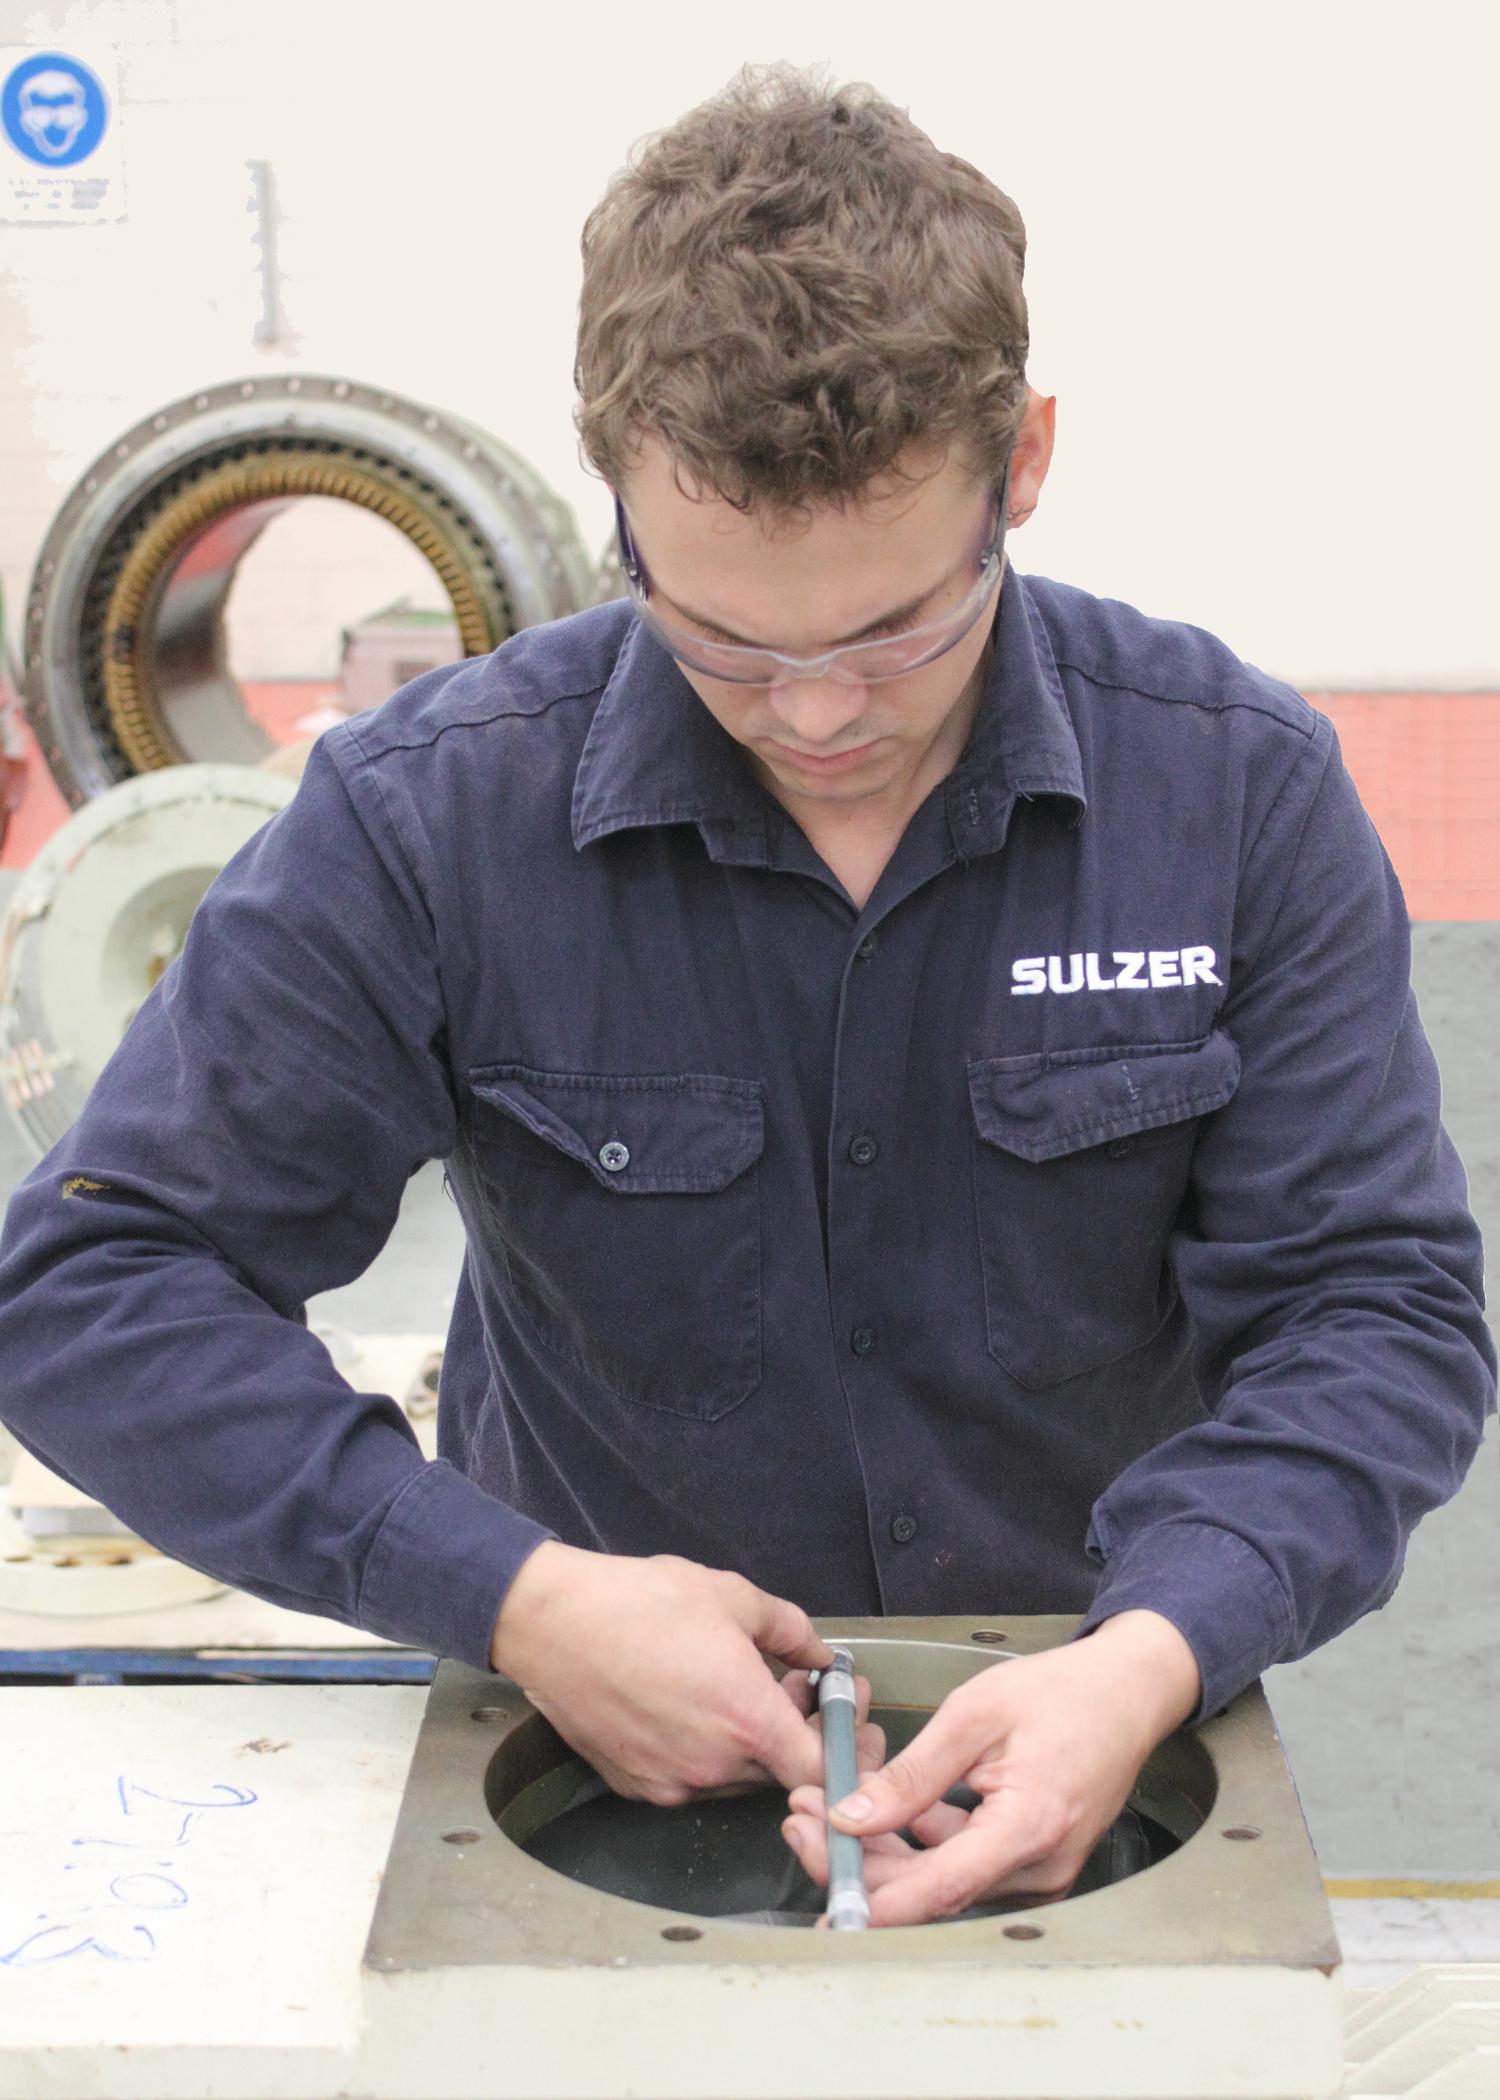 Offering a 24 hour, year round support service enables Sulzer to deliver expertise in the most time efficient manner, and to keep operations running with minimal delays